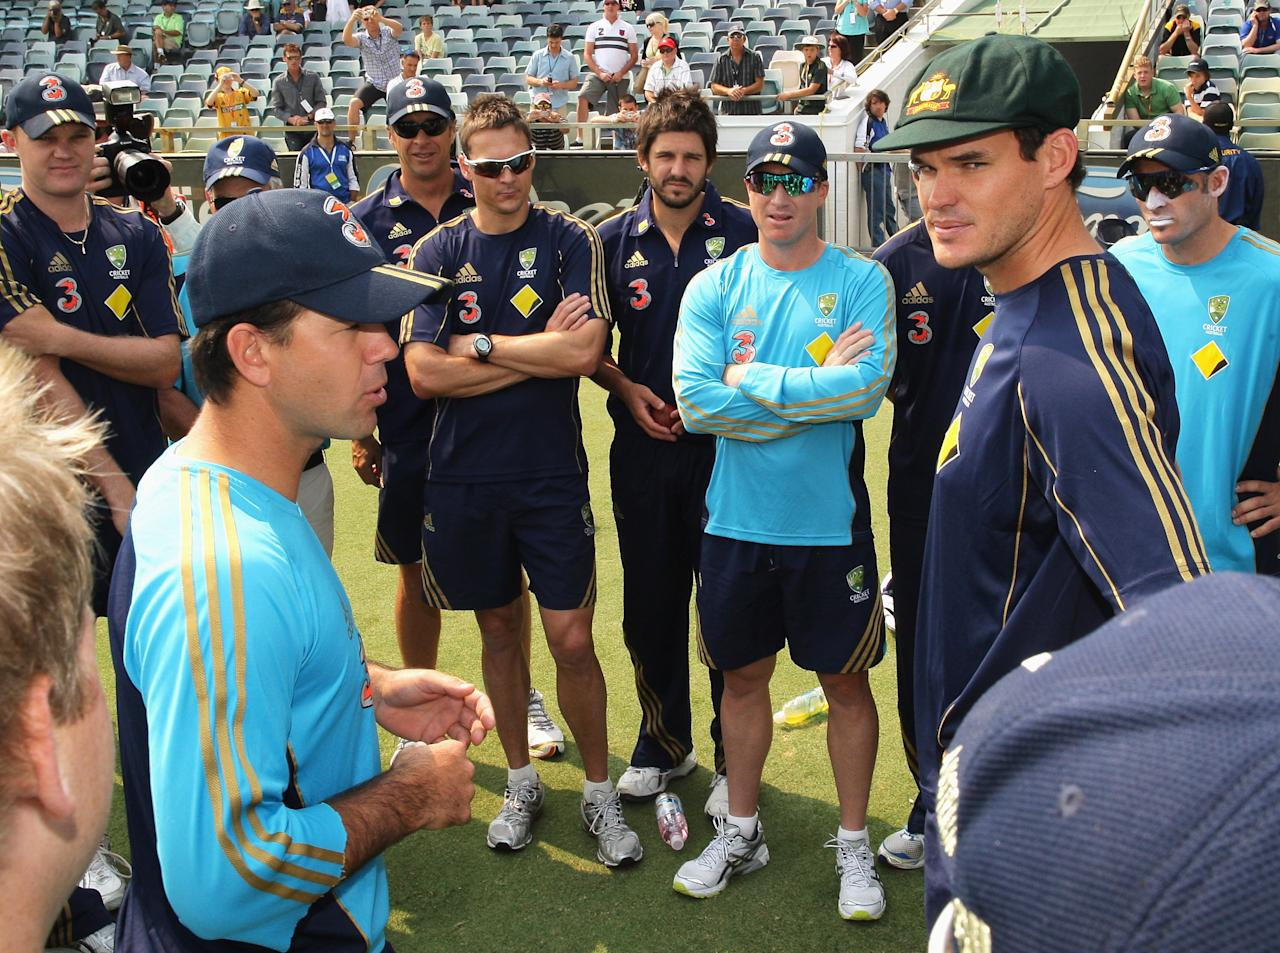 PERTH, AUSTRALIA - DECEMBER 16:  Australian Captain Ricky Ponting presents a baggy green cap to test debutant Clint McKay during day one of the Third Test match between Australian and the West Indies at WACA on December 16, 2009 in Perth, Australia.  (Photo by Mark Dadswell/Getty Images)